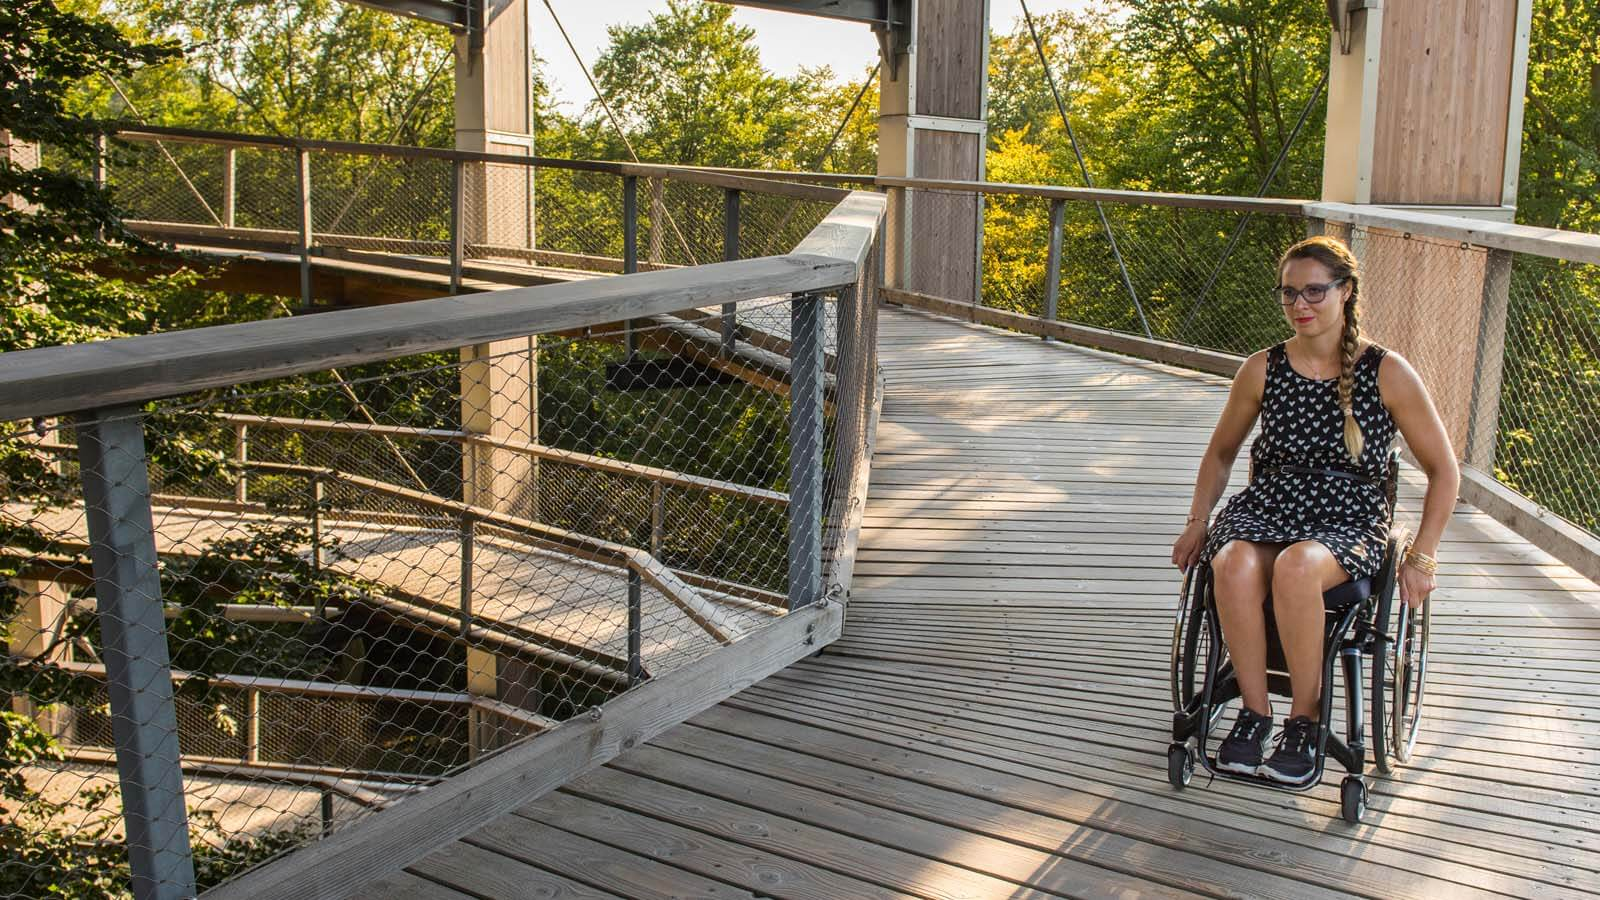 GNTB image of wheelchair user in look-out tower with ramp